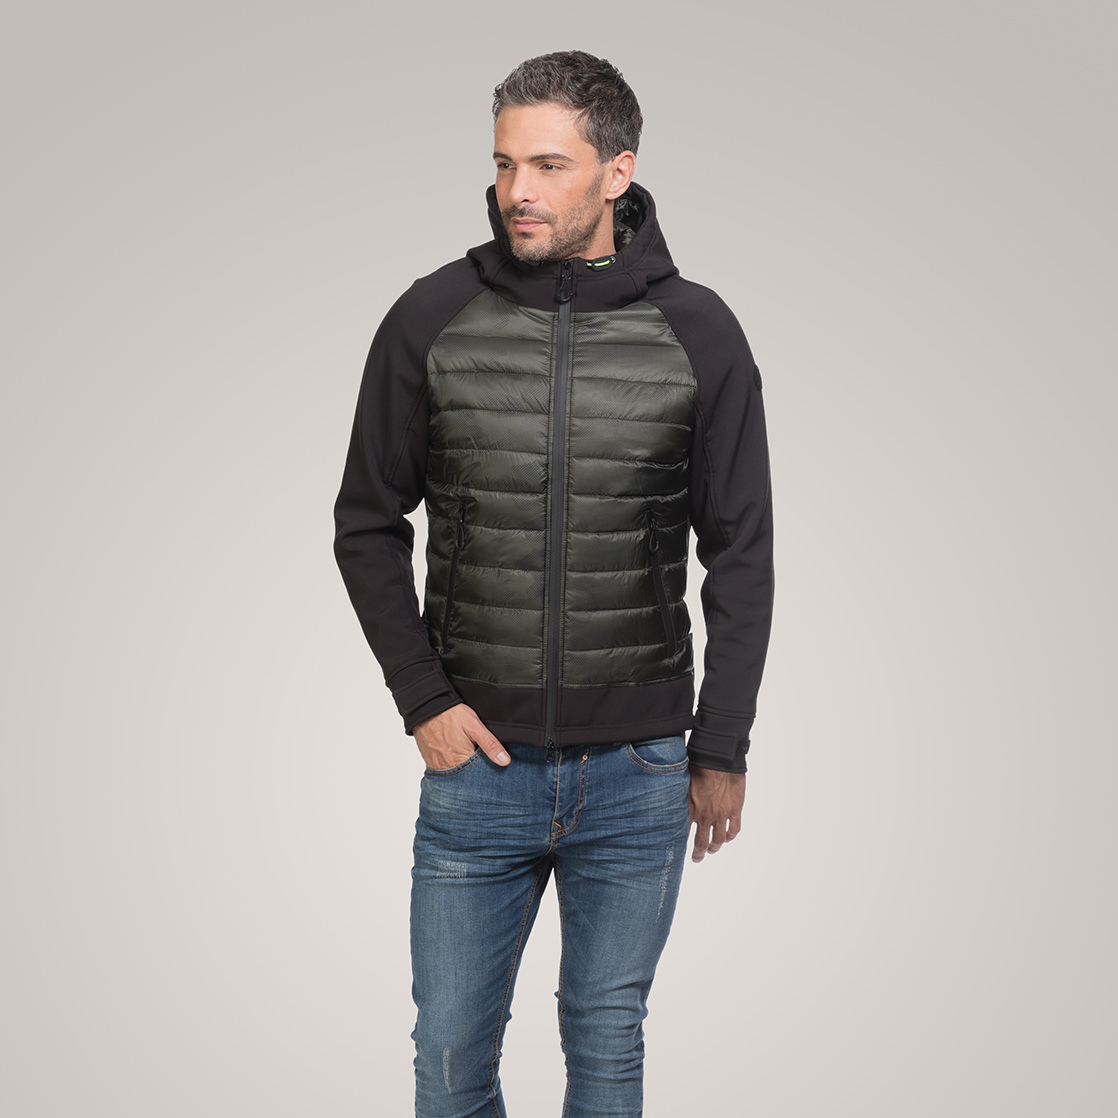 Padded Jacket in soft shell fabric and printed camouflage